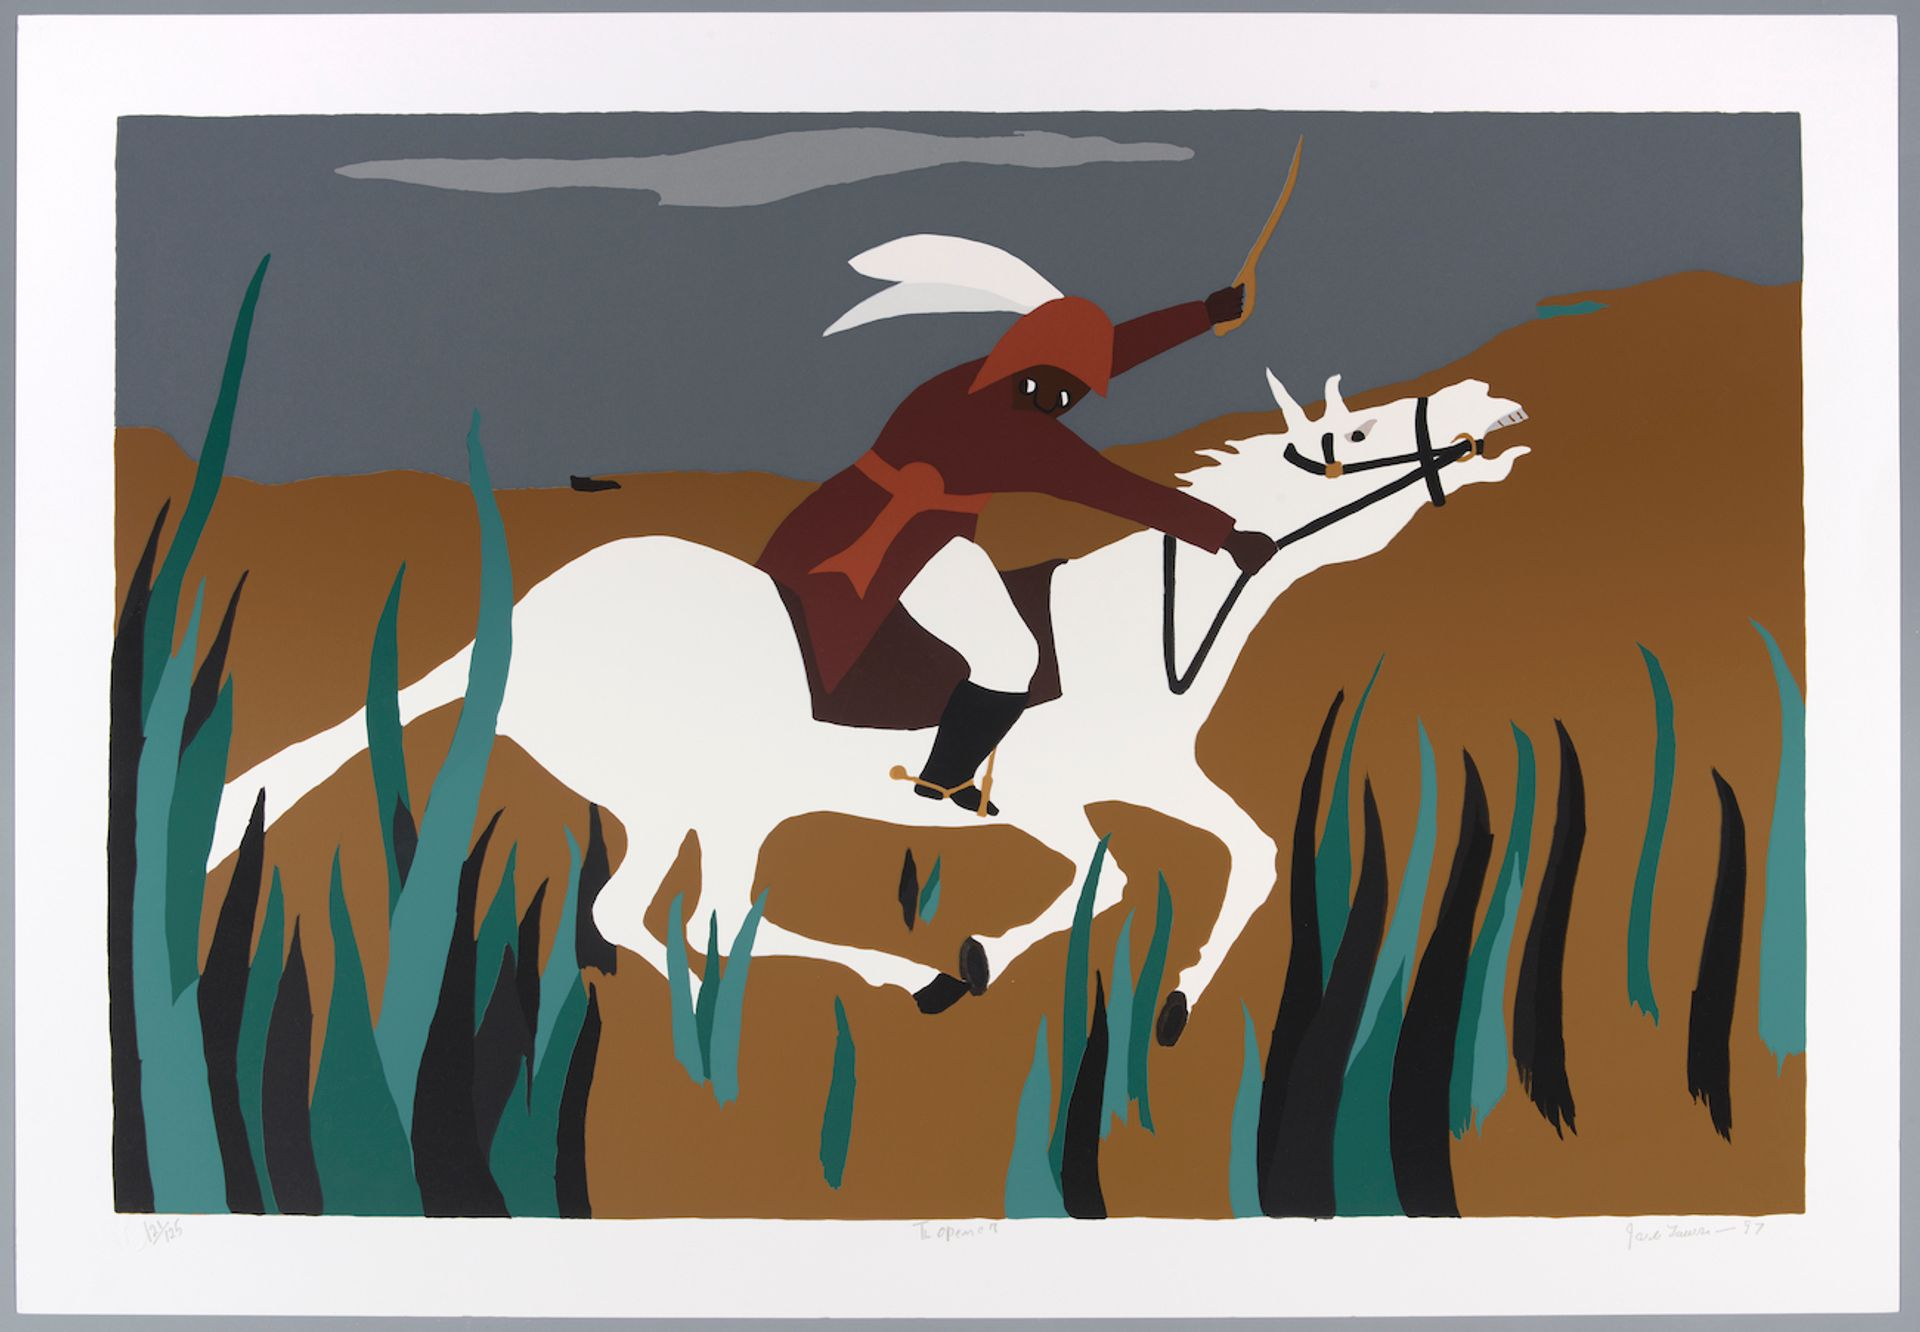 Jacob Lawrence, Toussaint at Ennery (1989) from the series The Life of Toussaint L'Ouverture (1986-97) Colby College Museum of Art